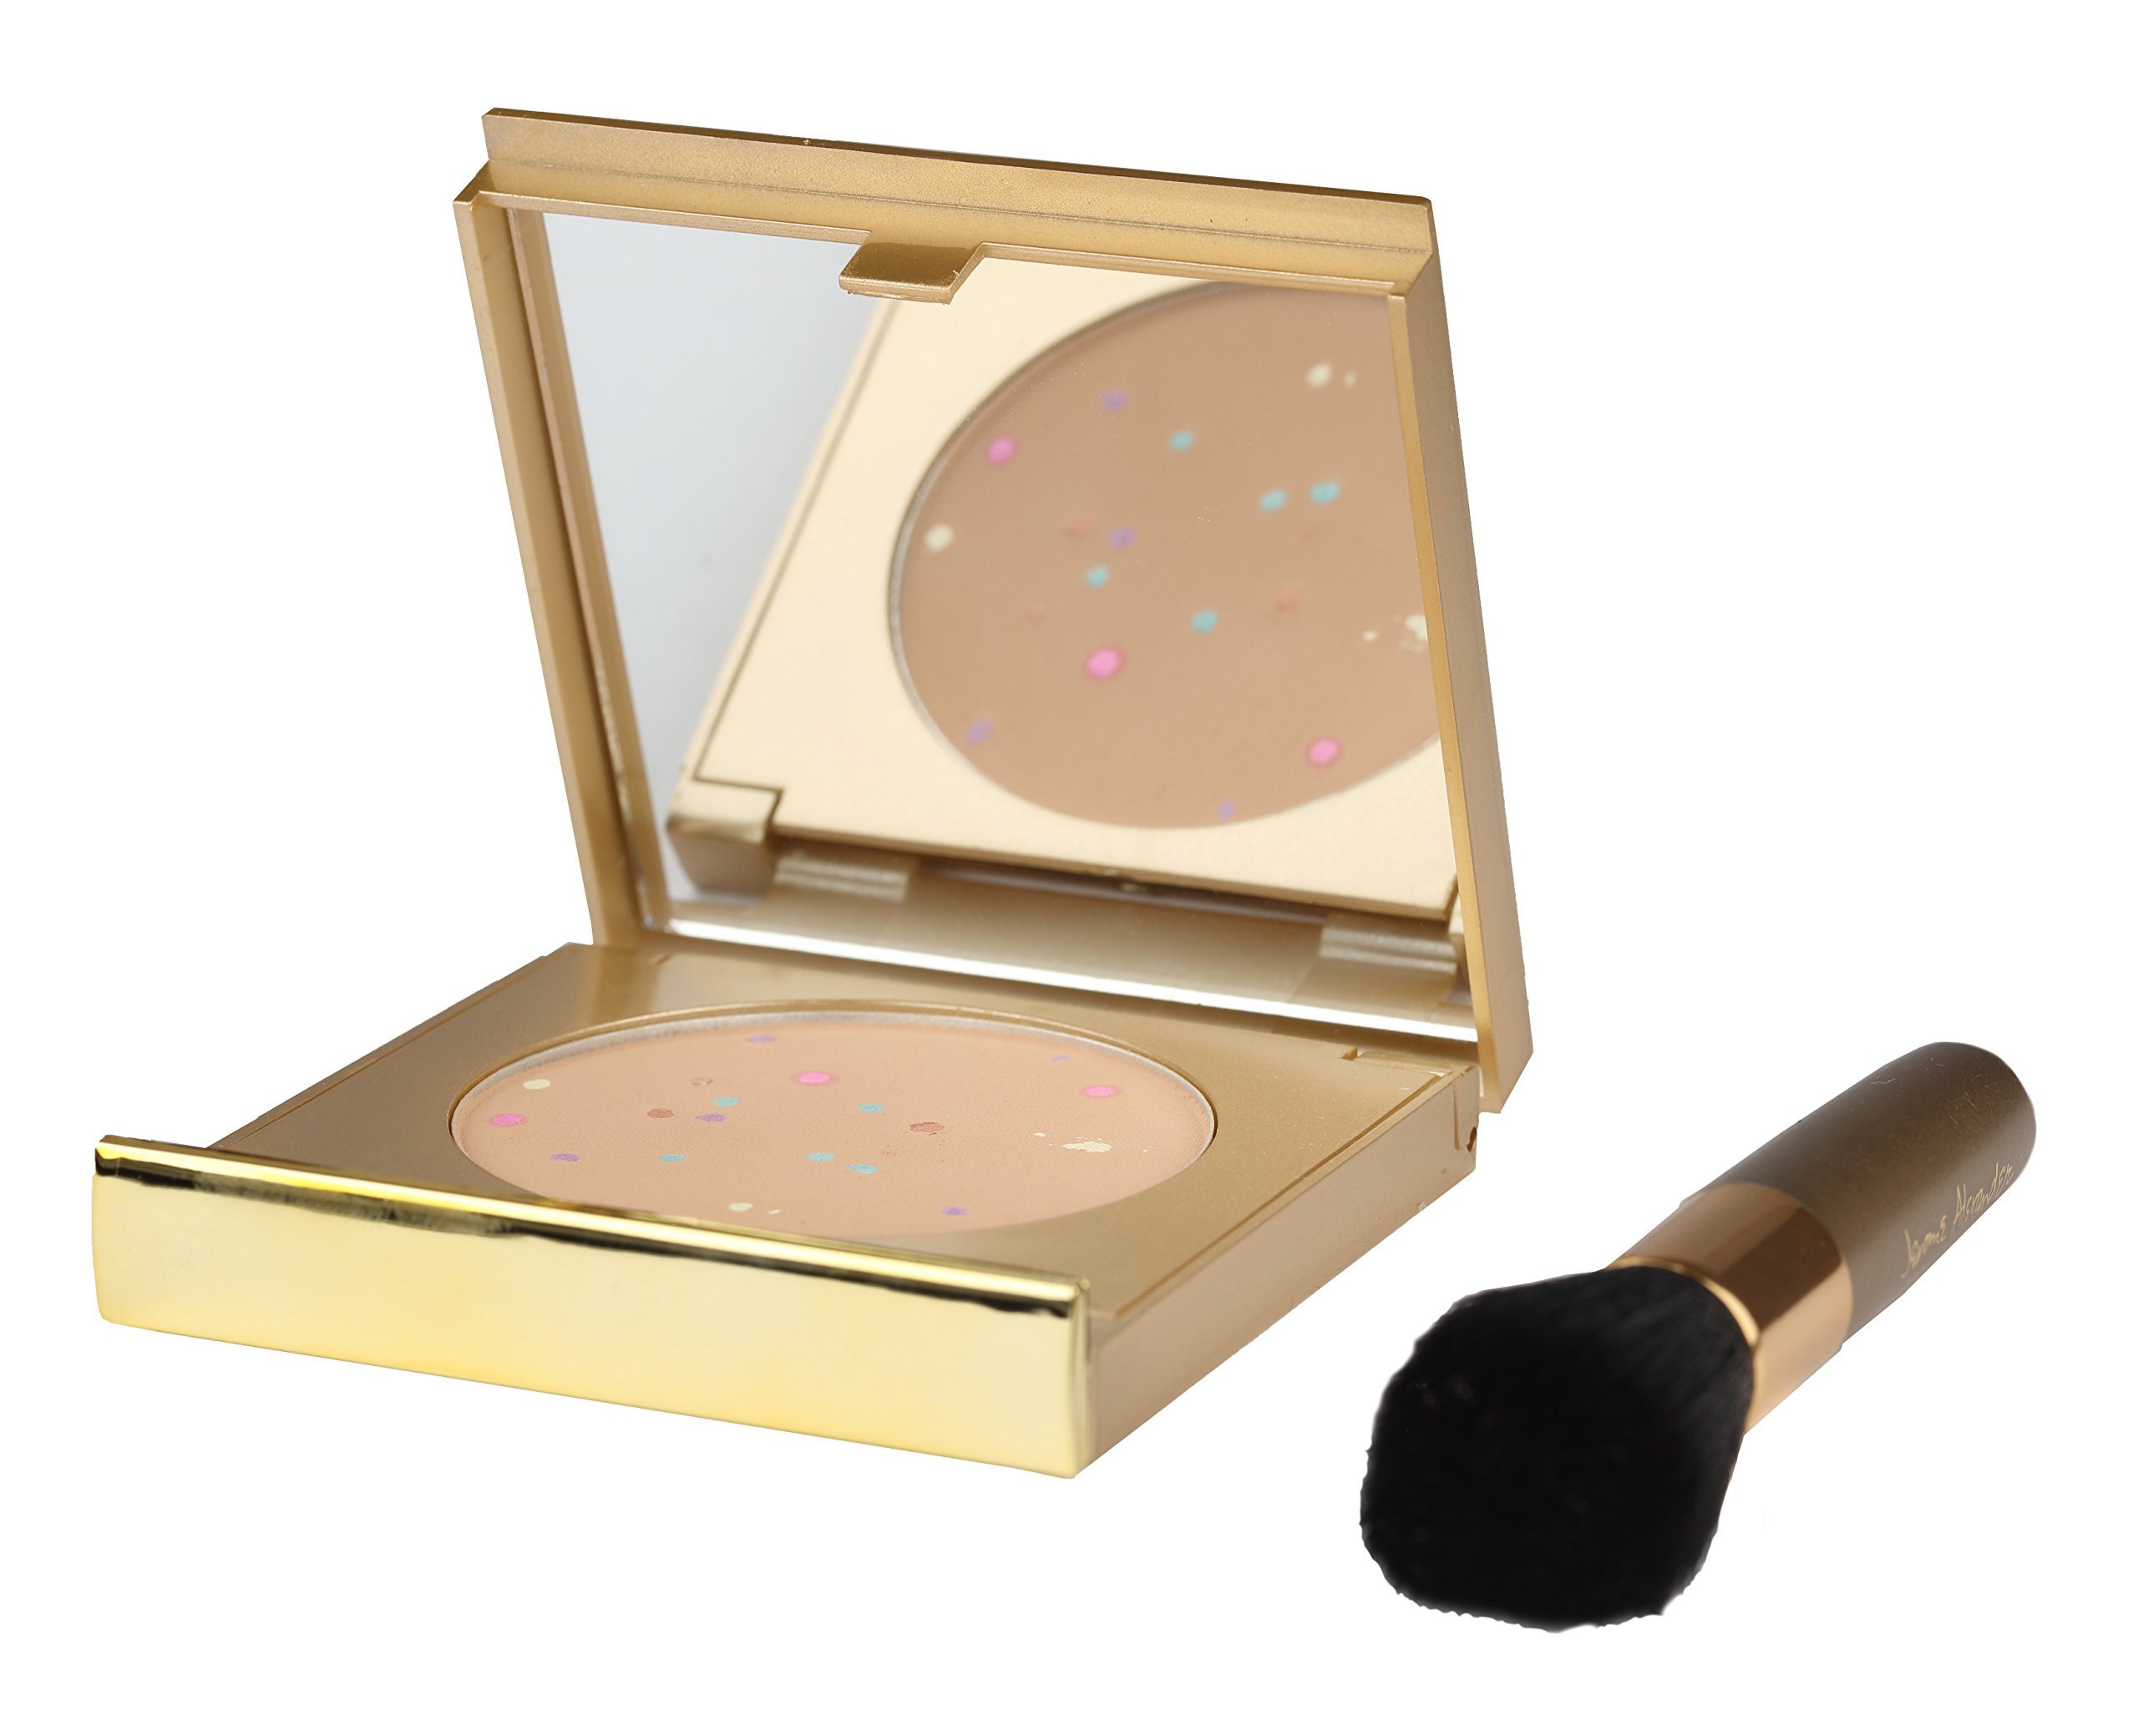 MagicMinerals Gold Edition by Jerome Alexander - Mineral Powder Compact with Mirror, Blending Sponge and Mini Stubby Brush - Foundation, Concealer and Corrector All-In-One - Light